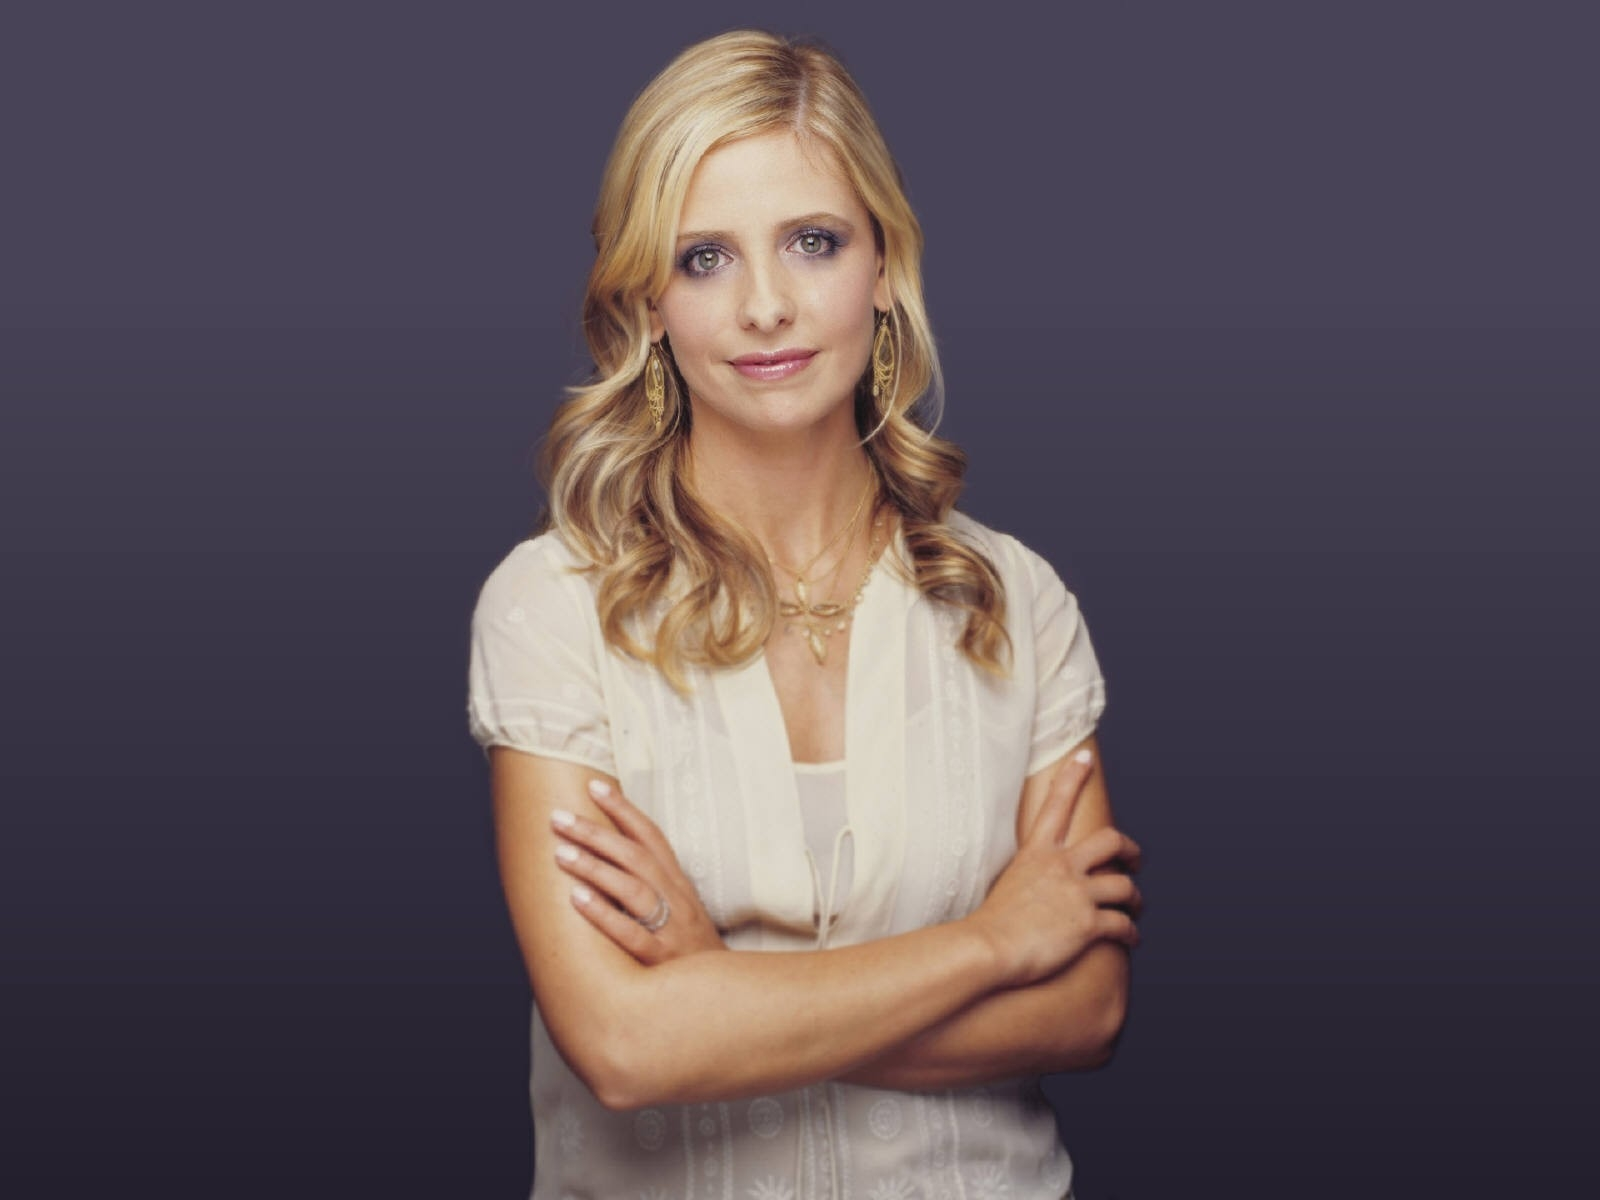 Wallpaper di Sarah Michelle Gellar con un abito color crema